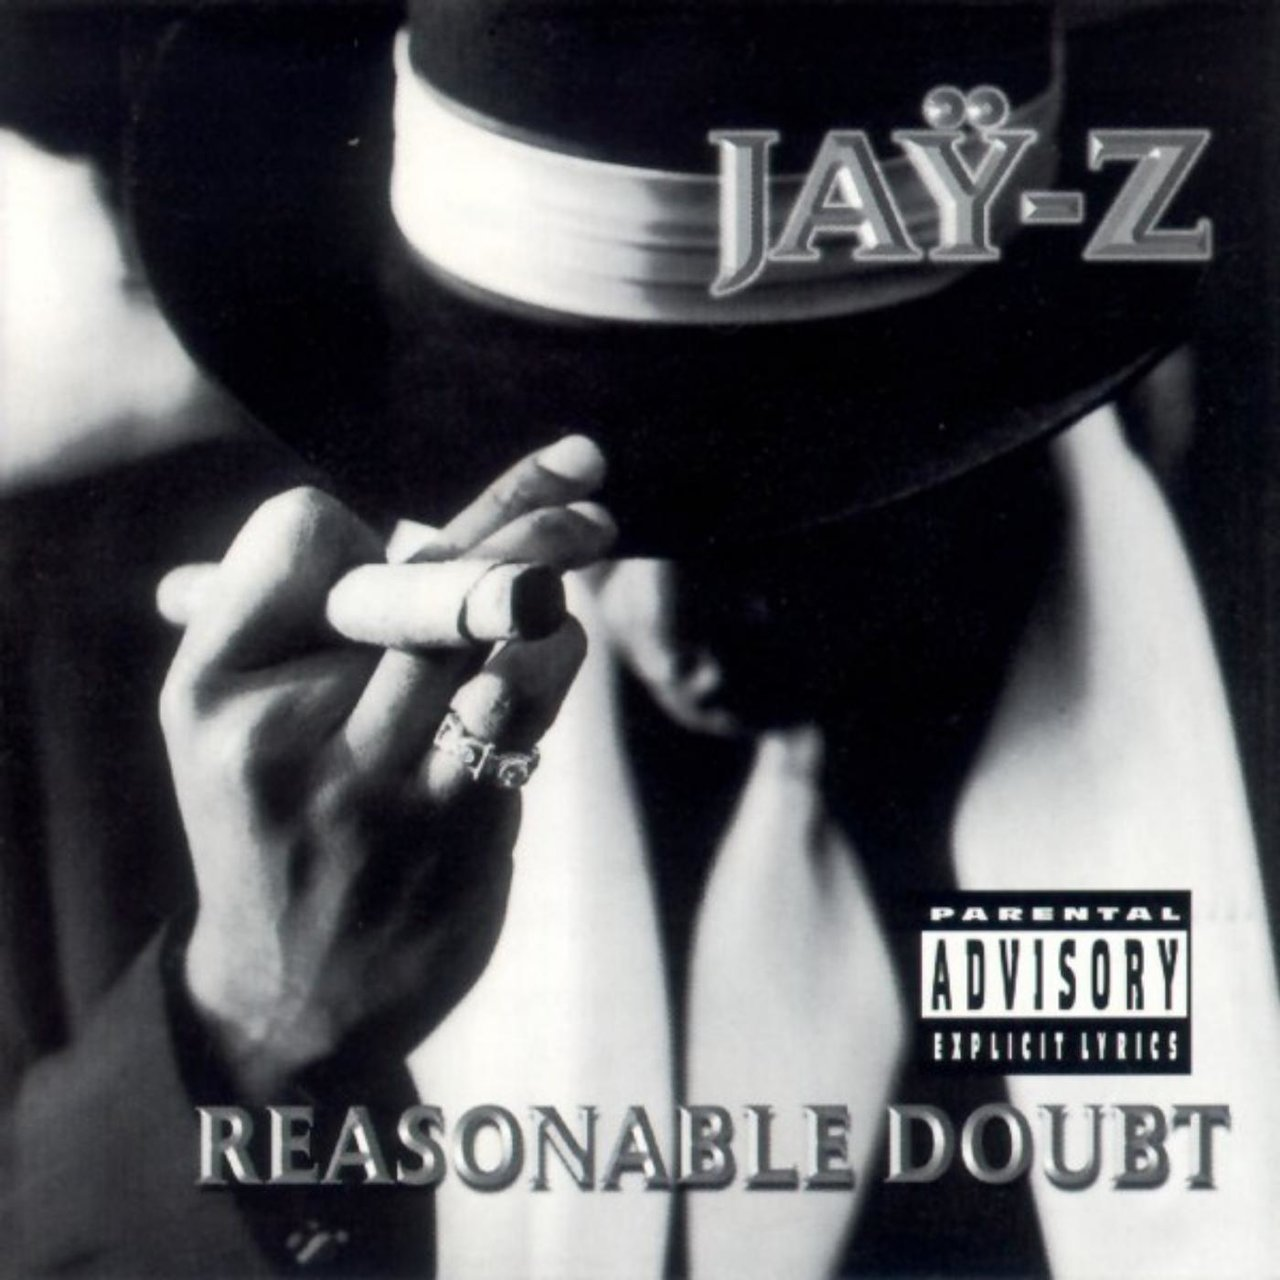 The evolution of jay zs cover art from reasonable doubt to 444 malvernweather Choice Image